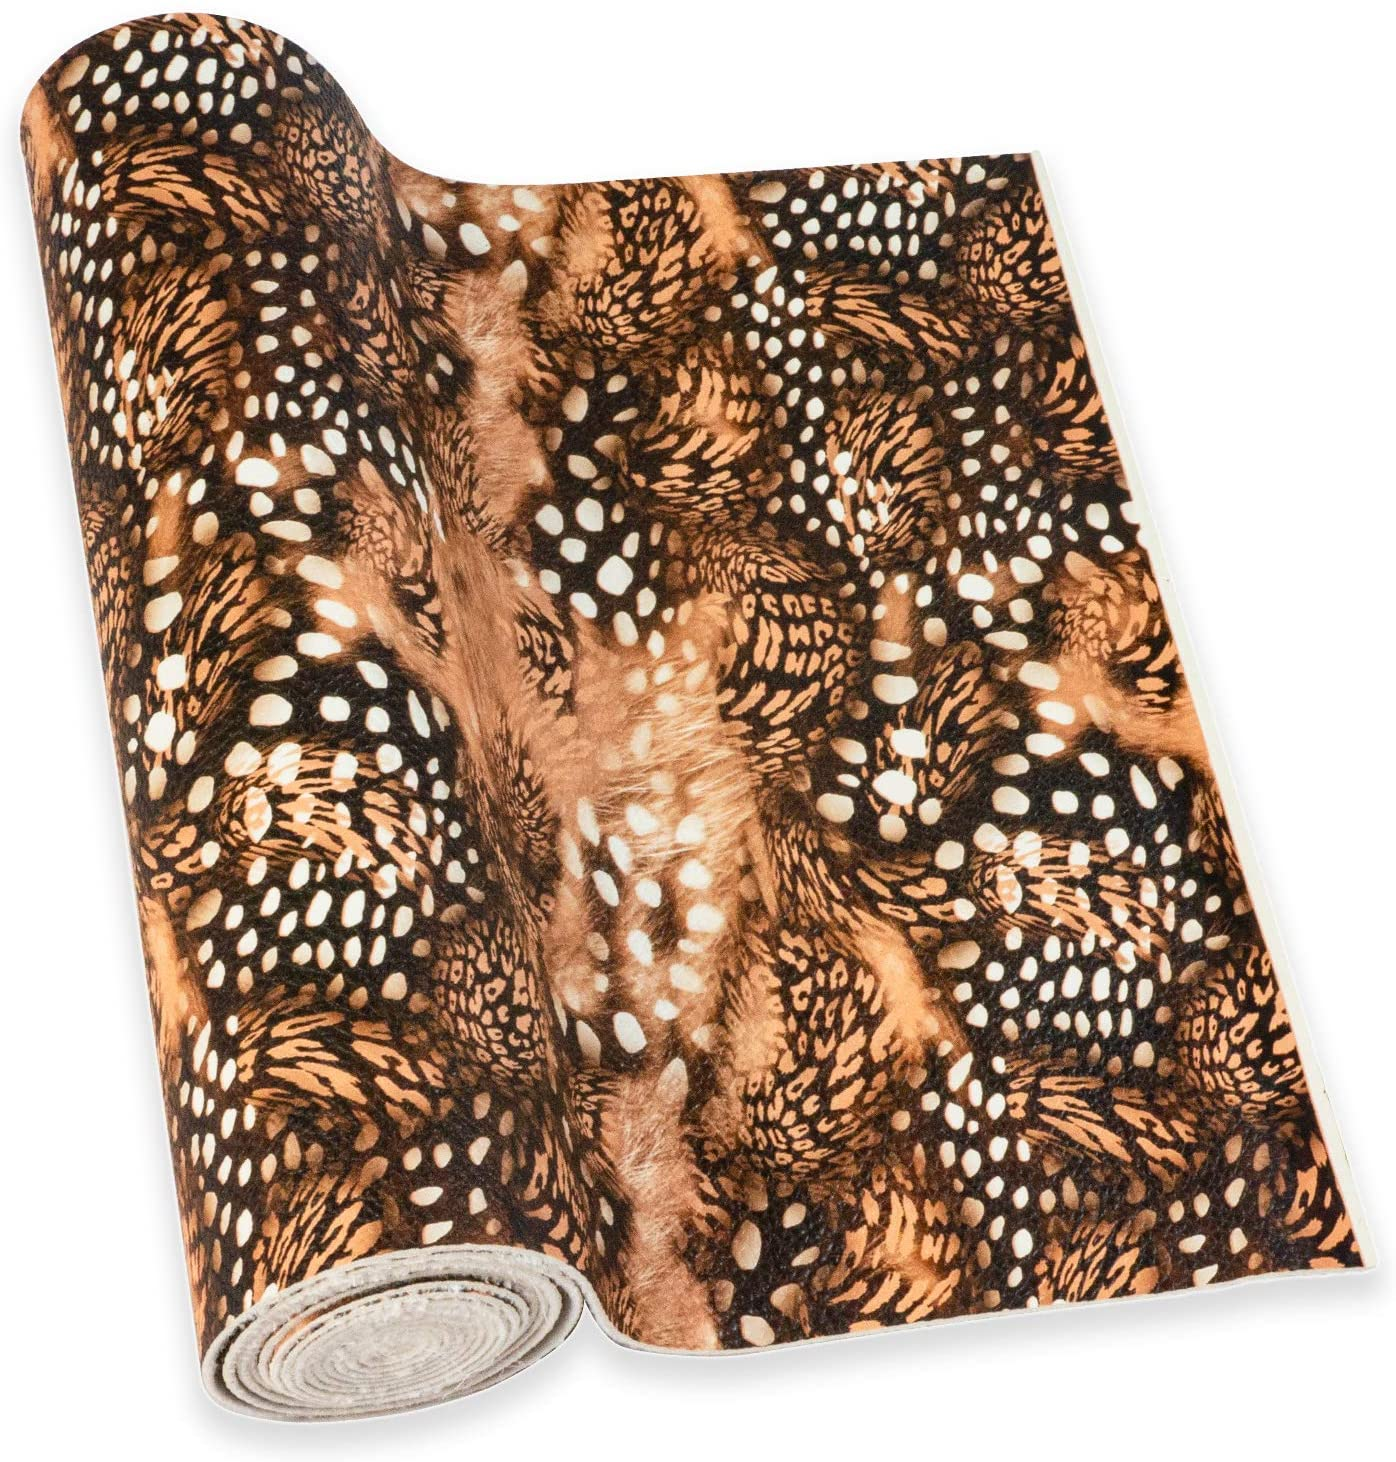 Caxilee Single Roll Brown Faux Leather Sheets Leopard Printed Synthetic PU Fabric, Large Size 8.3 x 53(21 x 135 cm), Used for Leather Craft DIY Project Hair Accessories (Brown Roll-2)